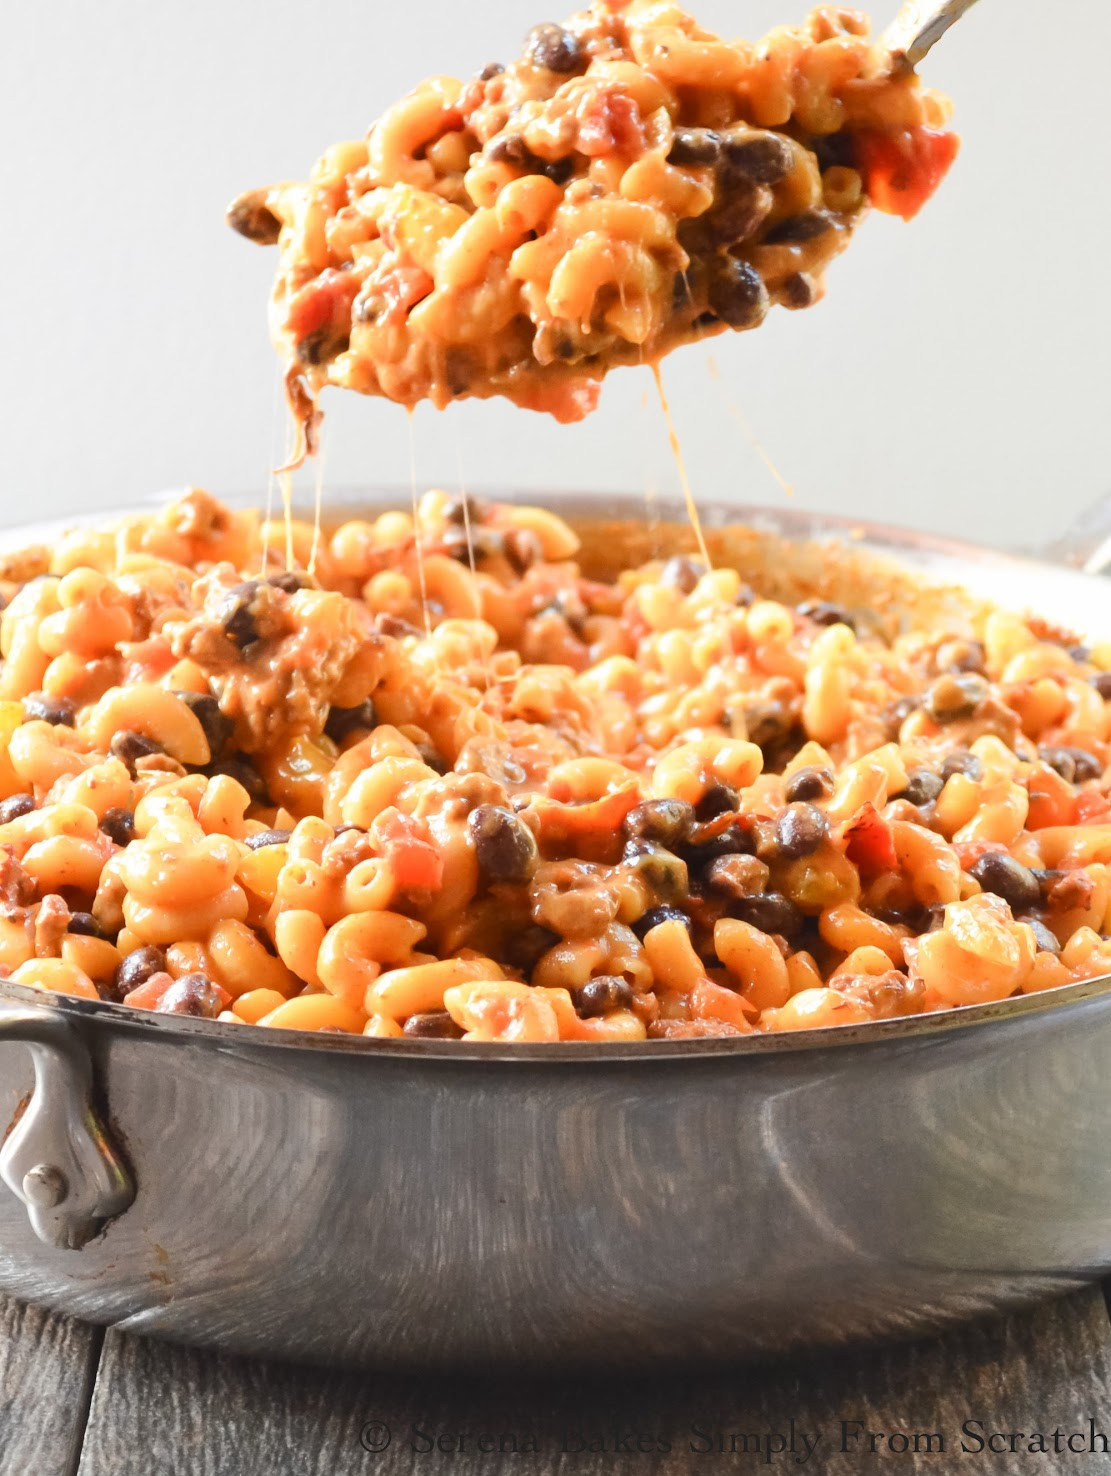 One Pot Chili Mac And Cheese is a combination of two family favorites from scratch and as easy to make as Hamburger Helper. Done in under 30 minutes. www.serenabakessimplyfromscratch.com